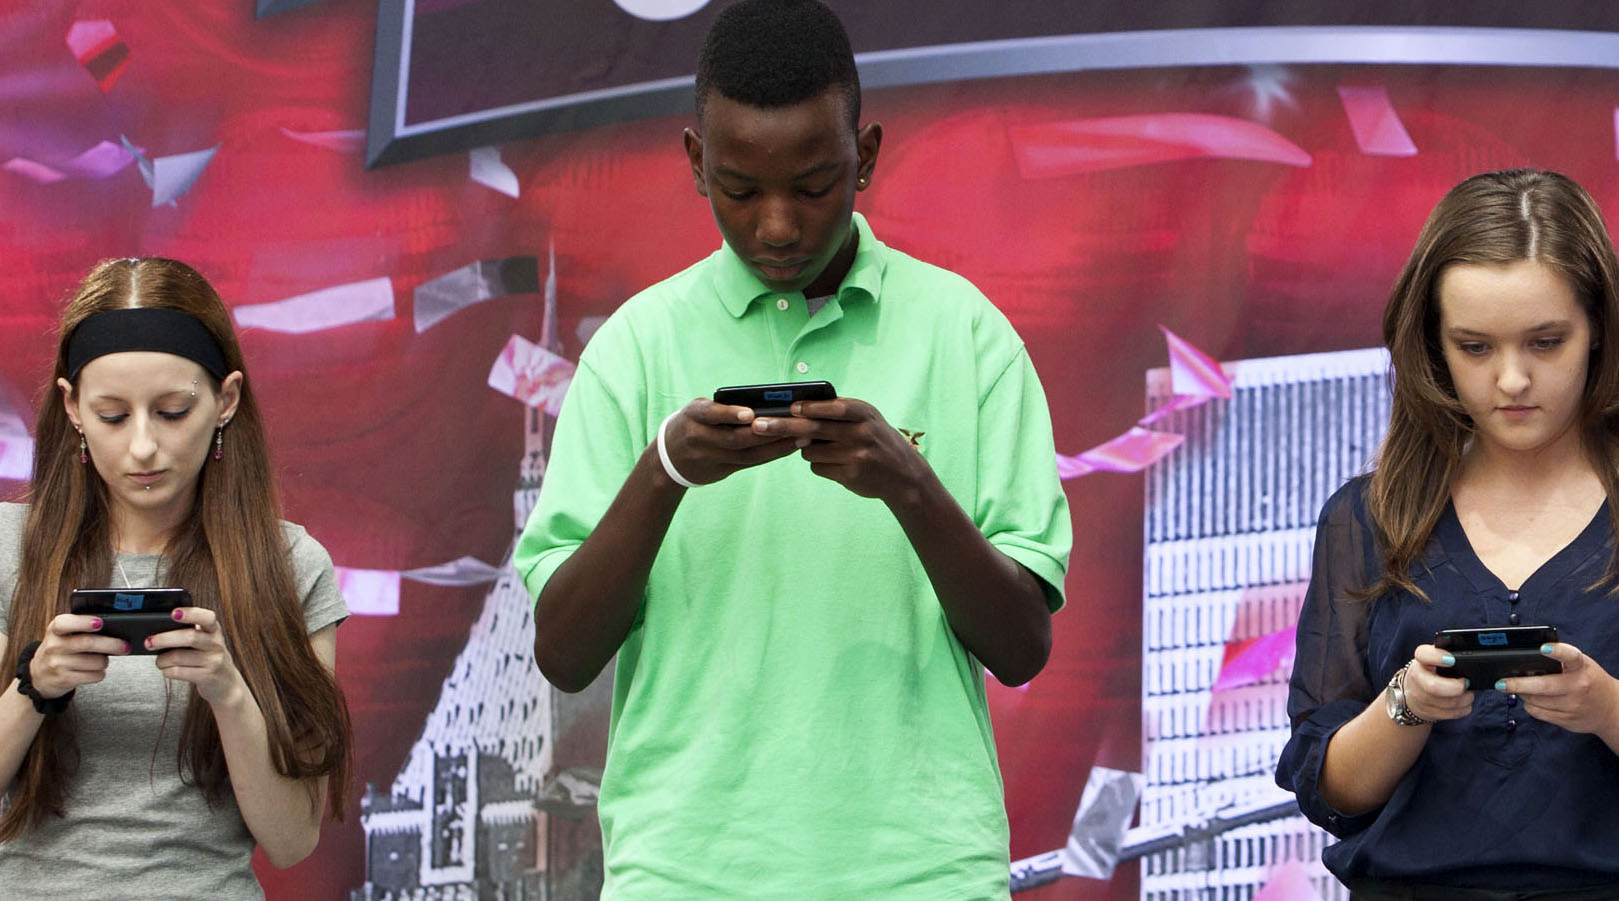 Contestants compete in the 2012 U.S. National Texting Championships in New York